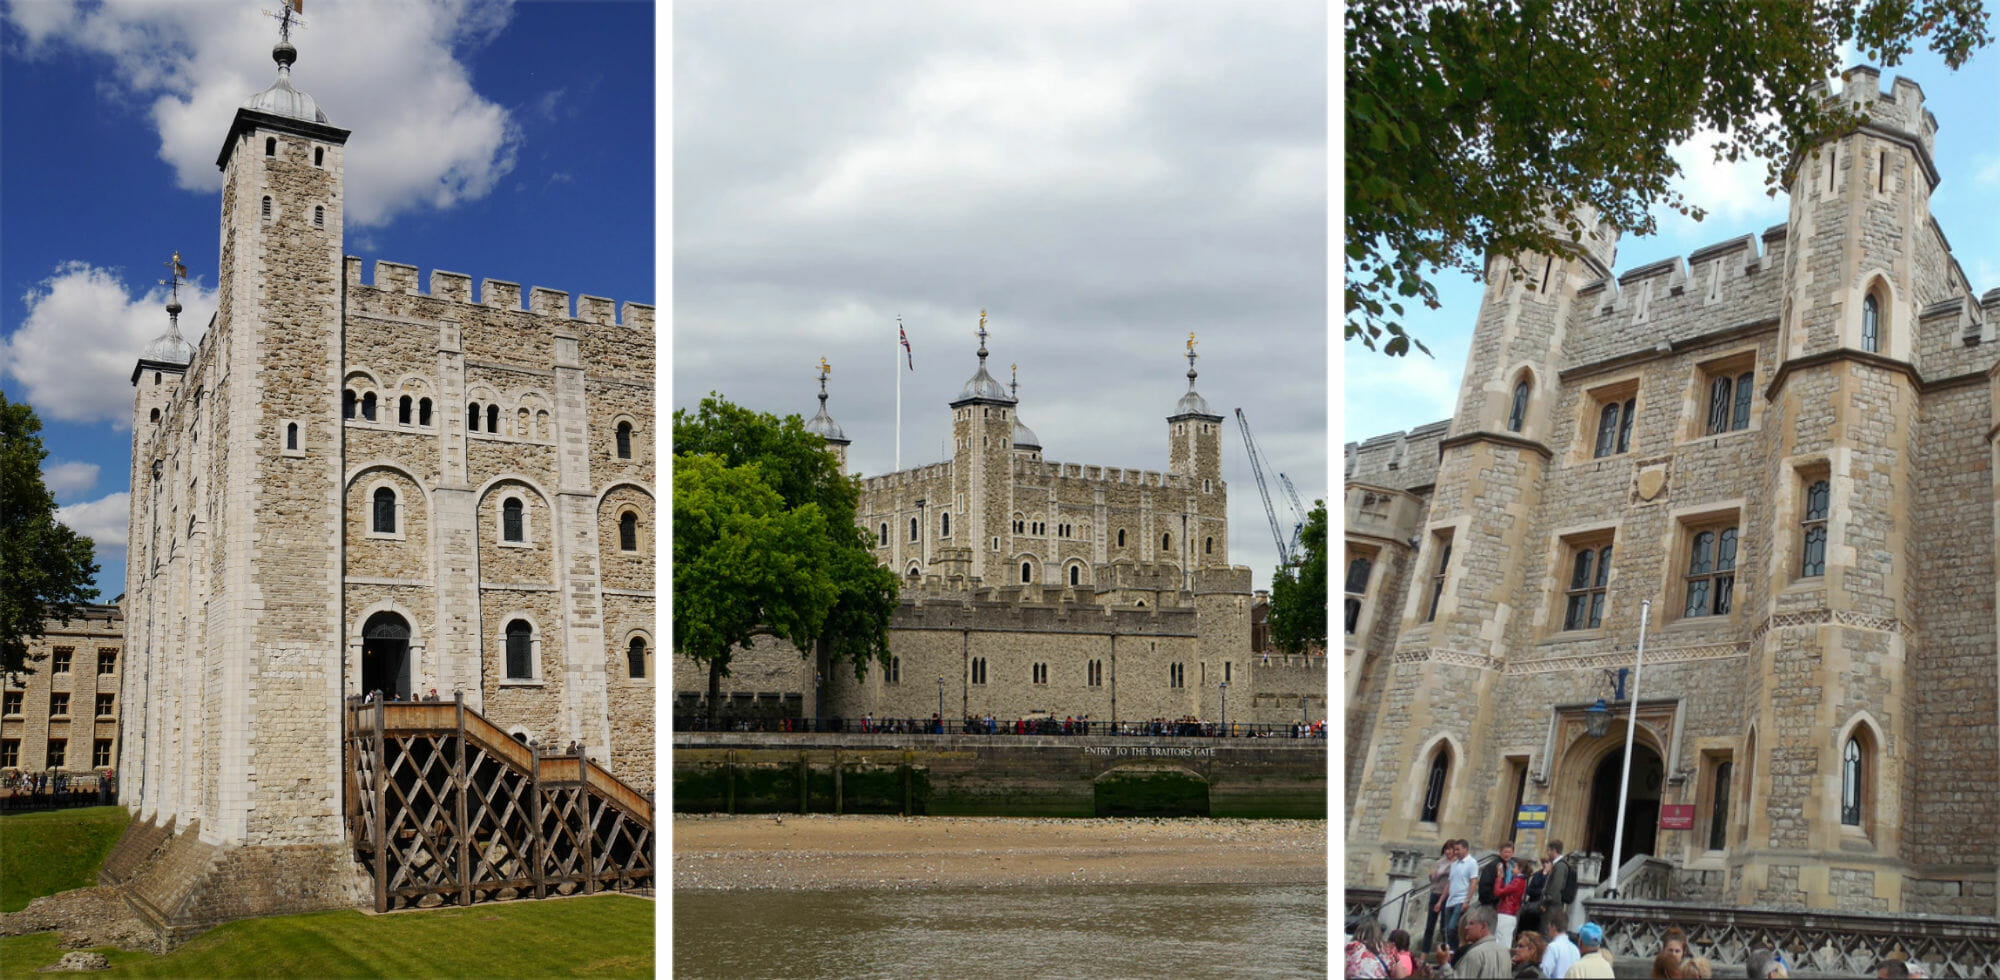 Tower of London exterior